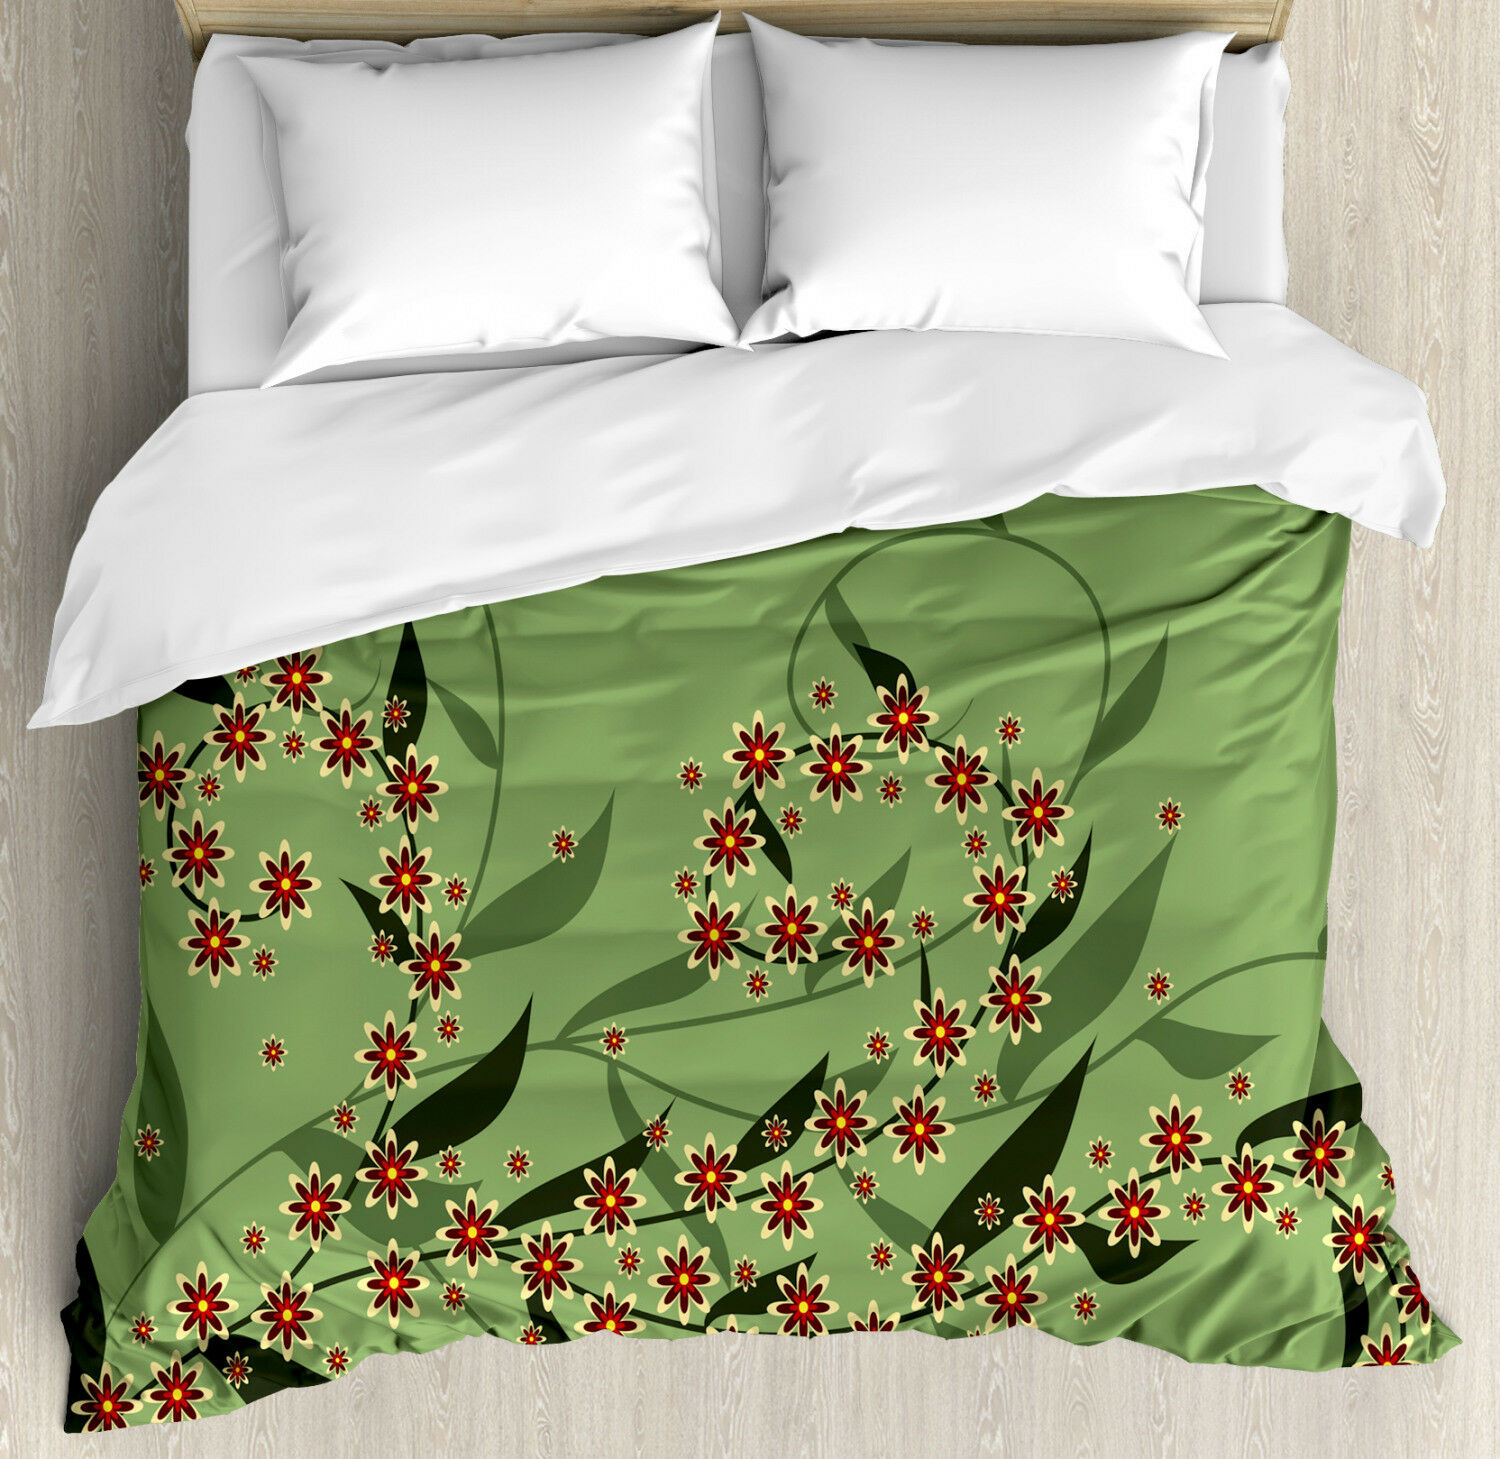 Floral Duvet Cover Set with Pillow Shams Retro Blooming Flowers Print